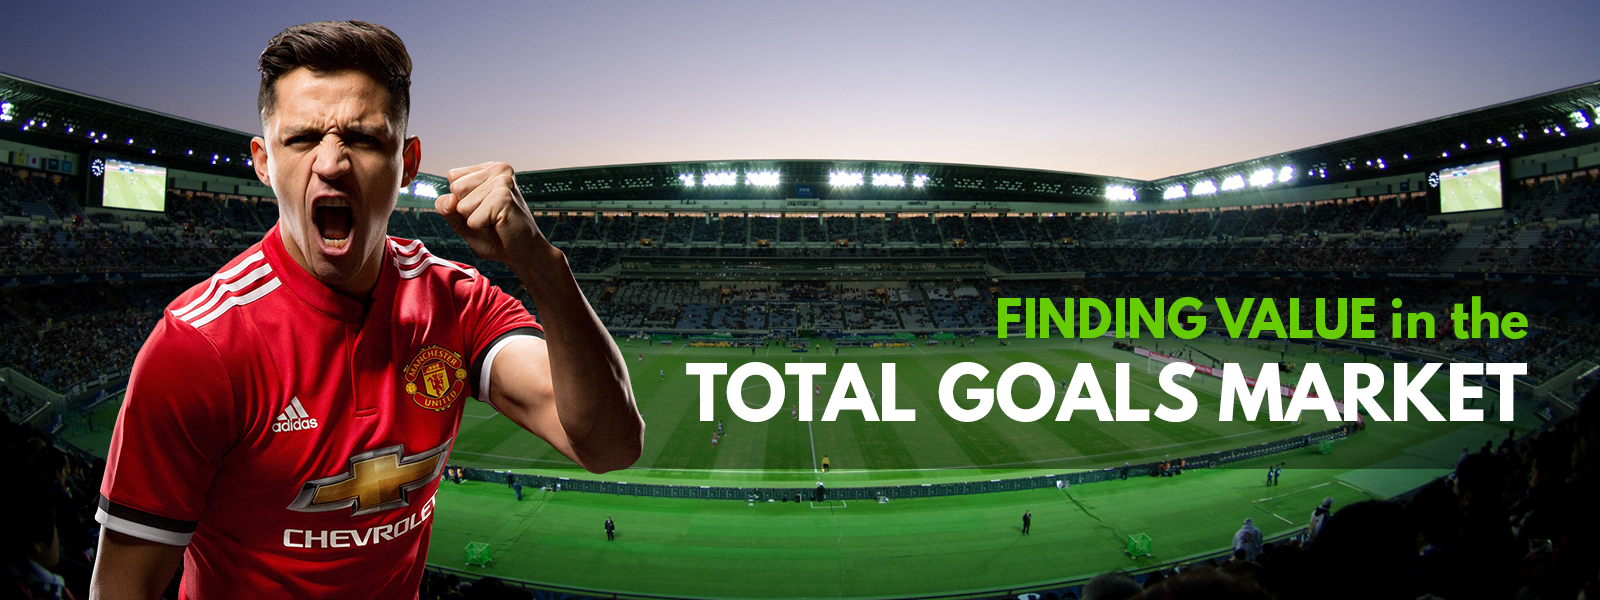 Finding Value in The Total Goals Market